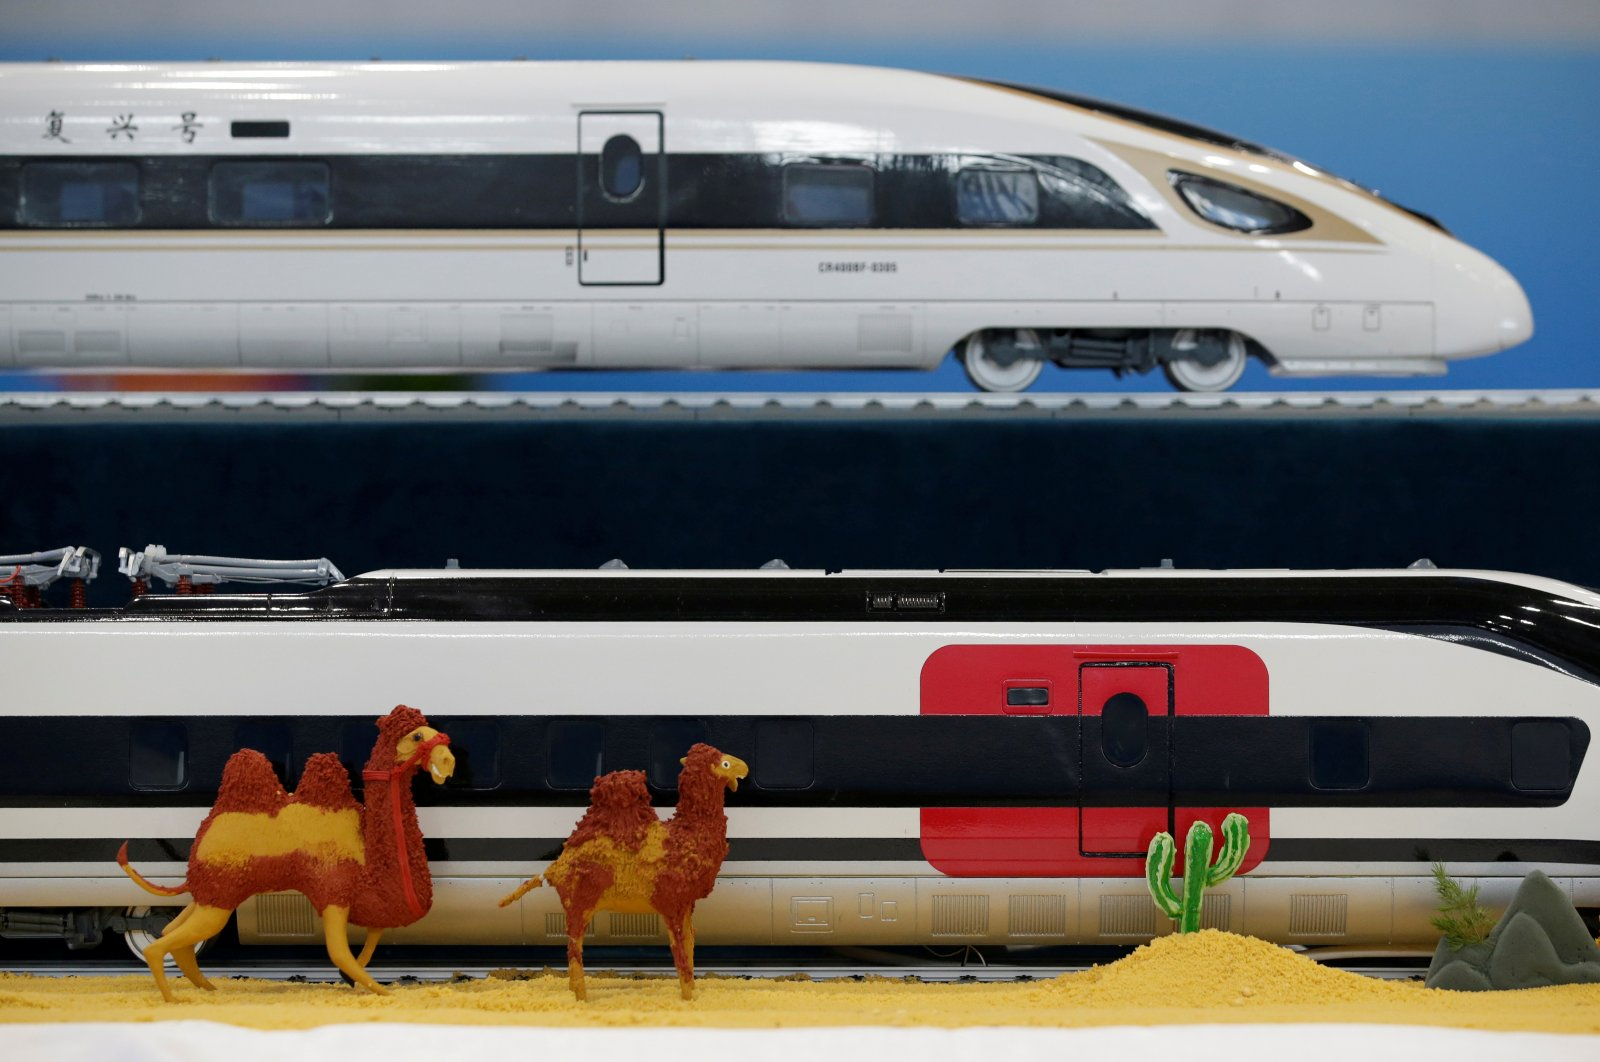 Replicas of China Railway high-speed trains are seen at a media center for the second Belt and Road Forum, in Beijing, China, April 26, 2019. (Reuters Photo)